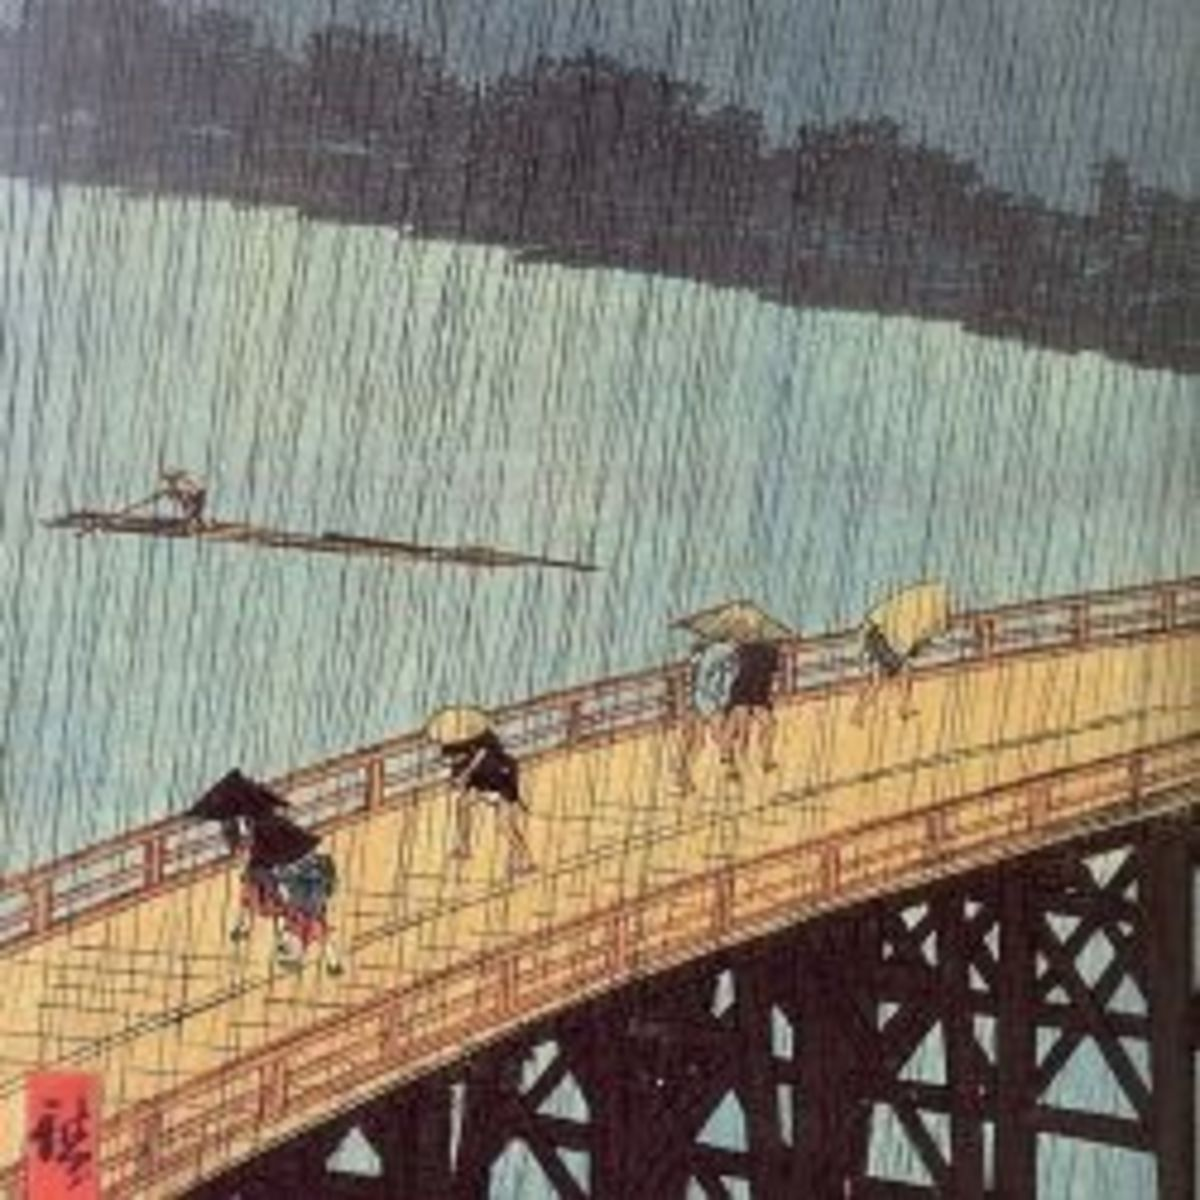 About Hiroshige - Famous Japanese Printmaker